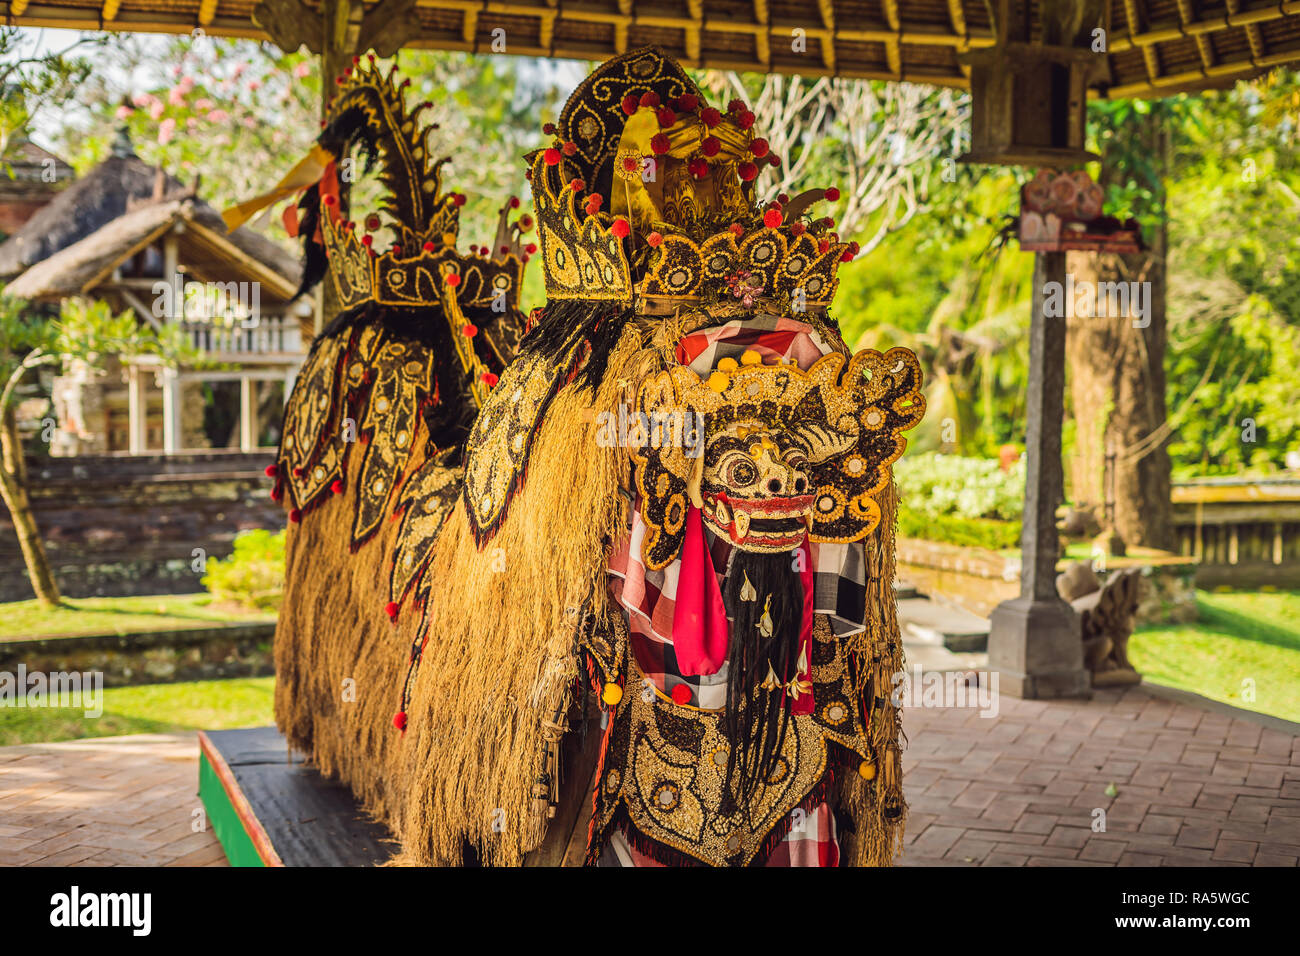 A statue of grains, a symbol of fertility Bali Indonesia - Stock Image